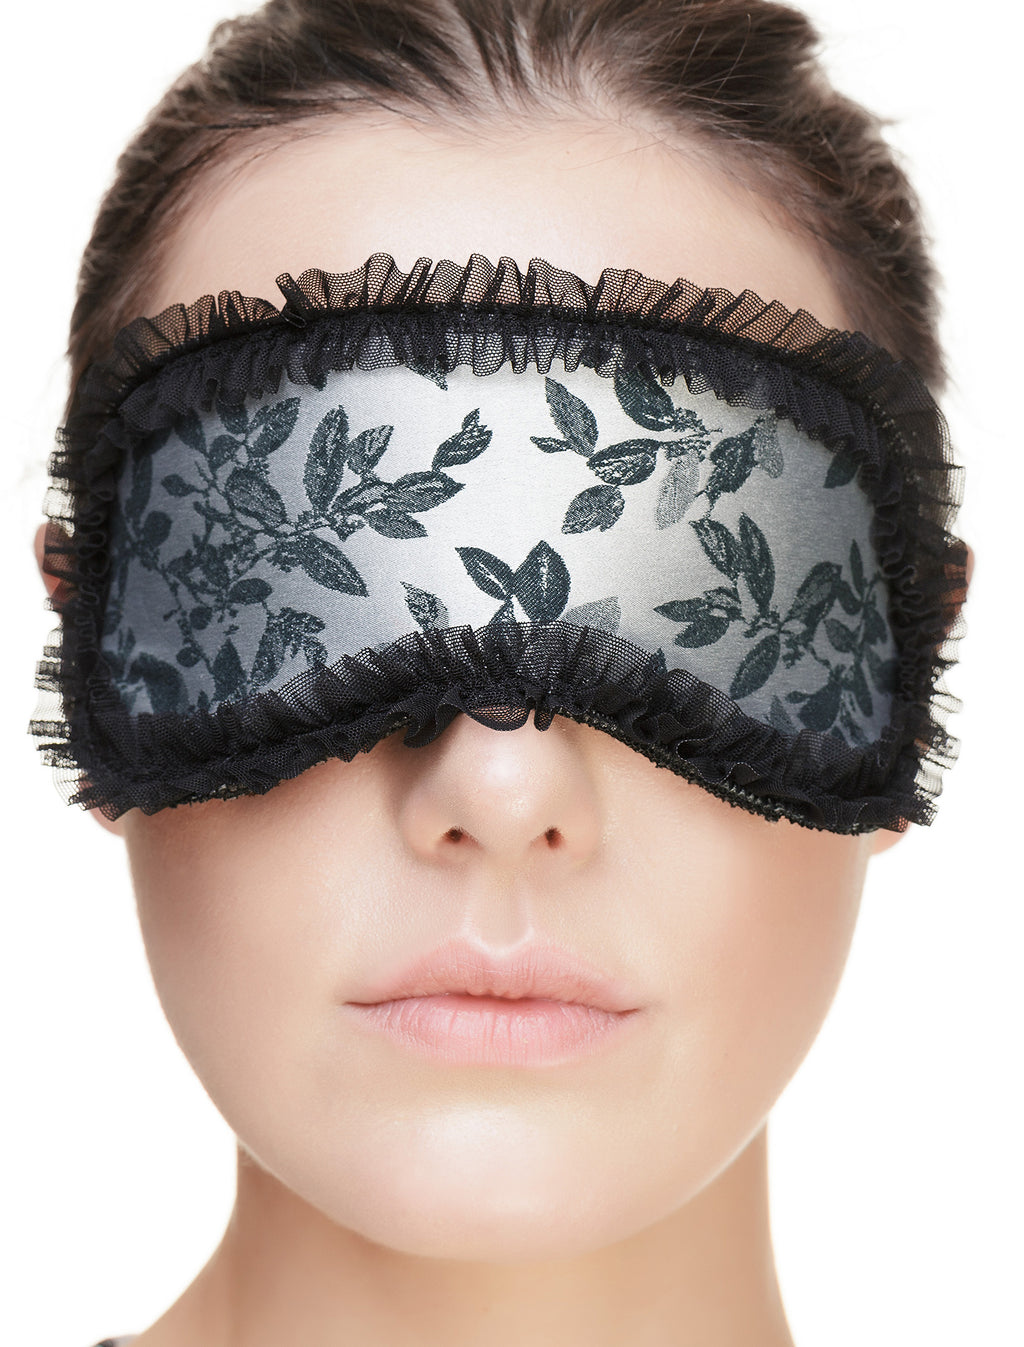 Lauma, Silver Satin Sleeping Mask, On Model Front, 63J00